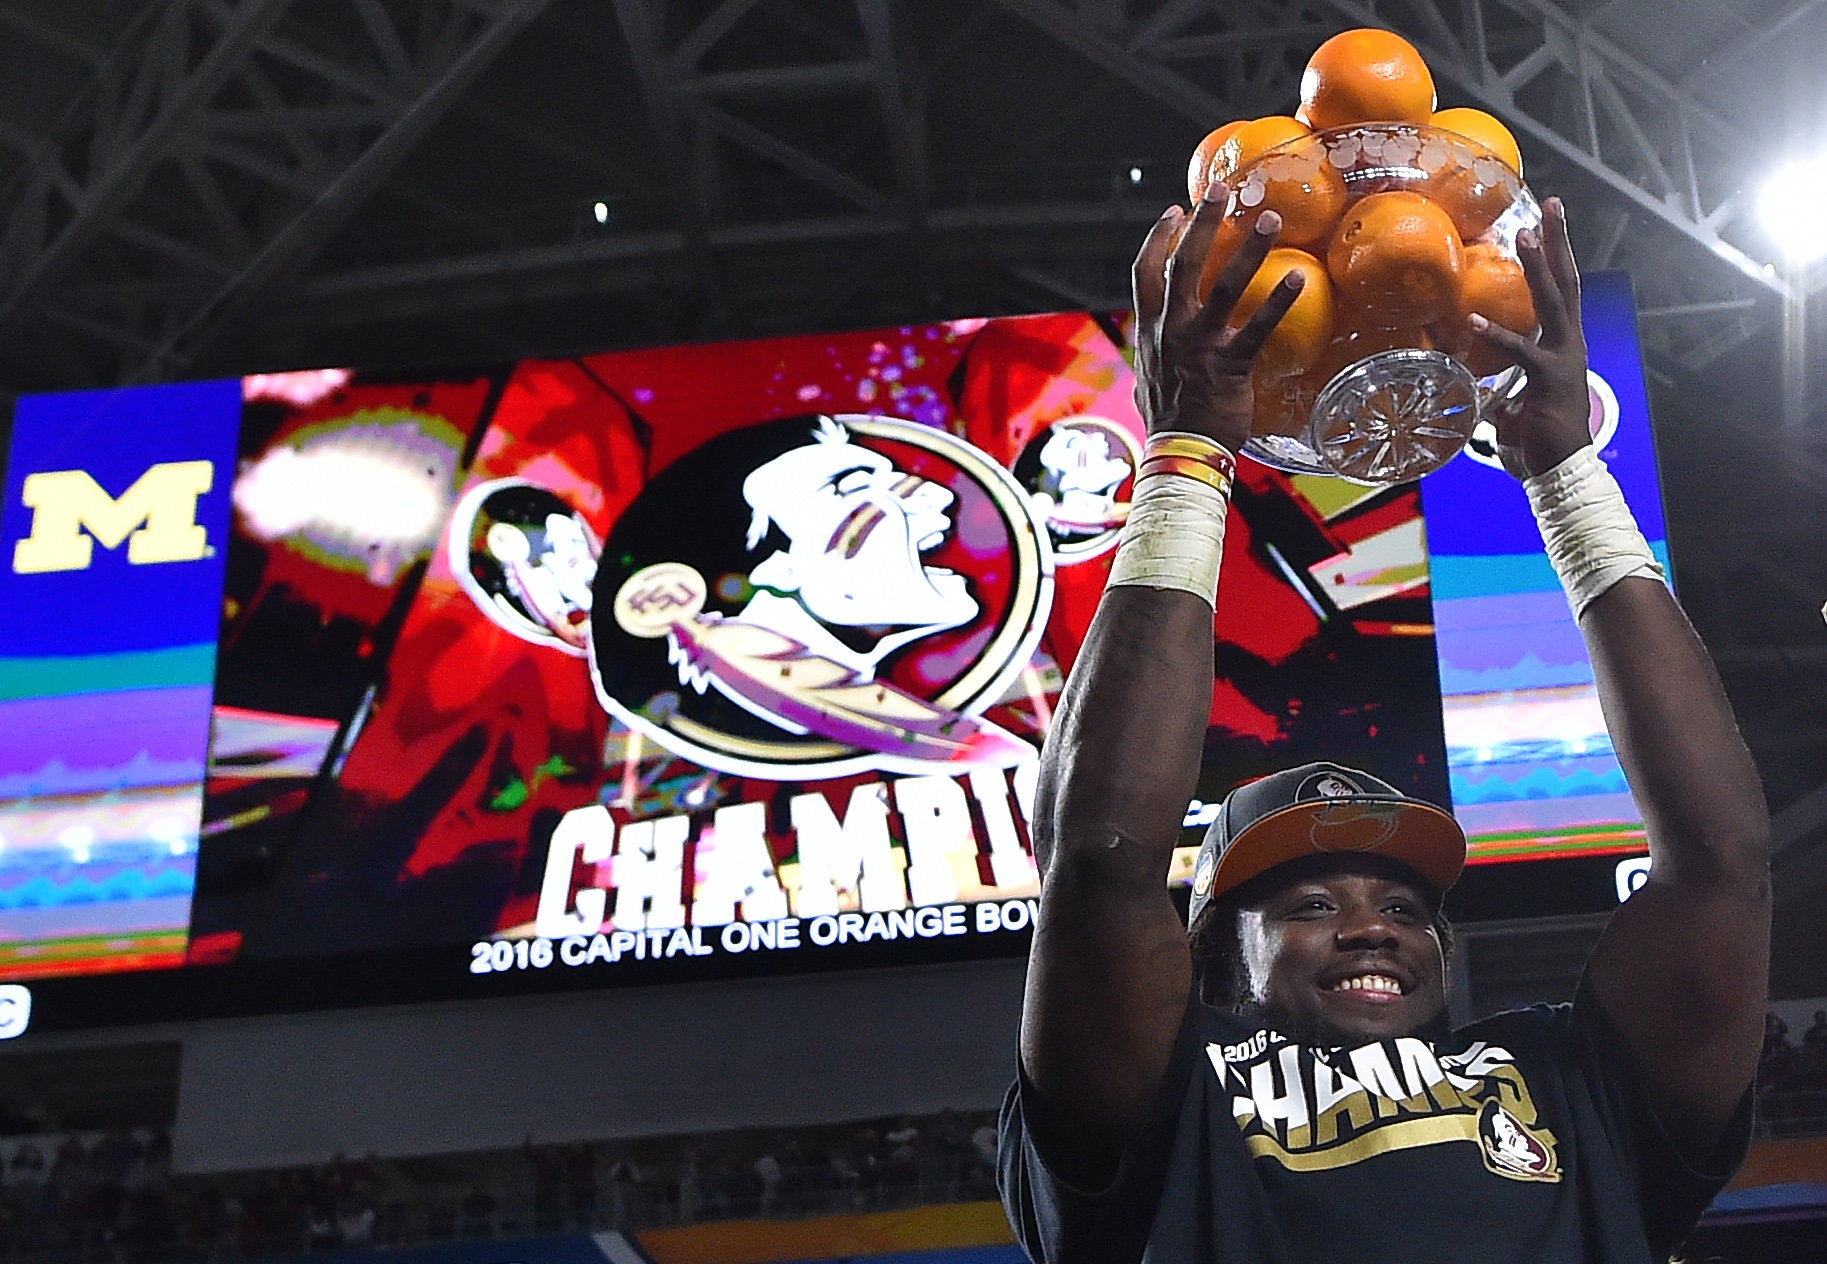 If you picked Florida State, you chose wisely.